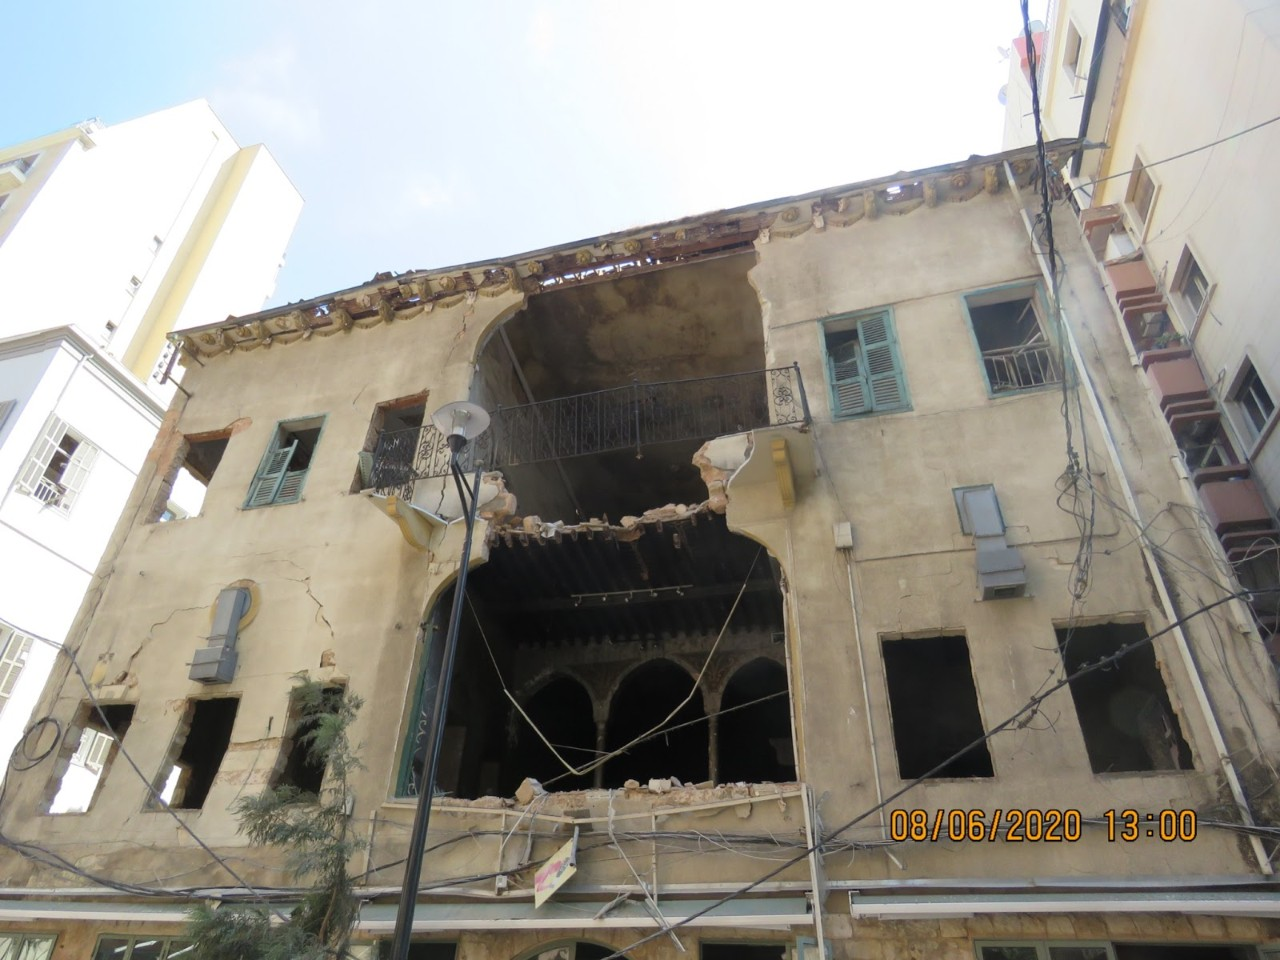 An old building with a fallen balcony in Gemmayzeh, Lebanon, August 6, 2020. Many of these buildings were Beiruti heritage, having been around for more than 100 years. Photo by Hadil Dia (mindshapedbox)